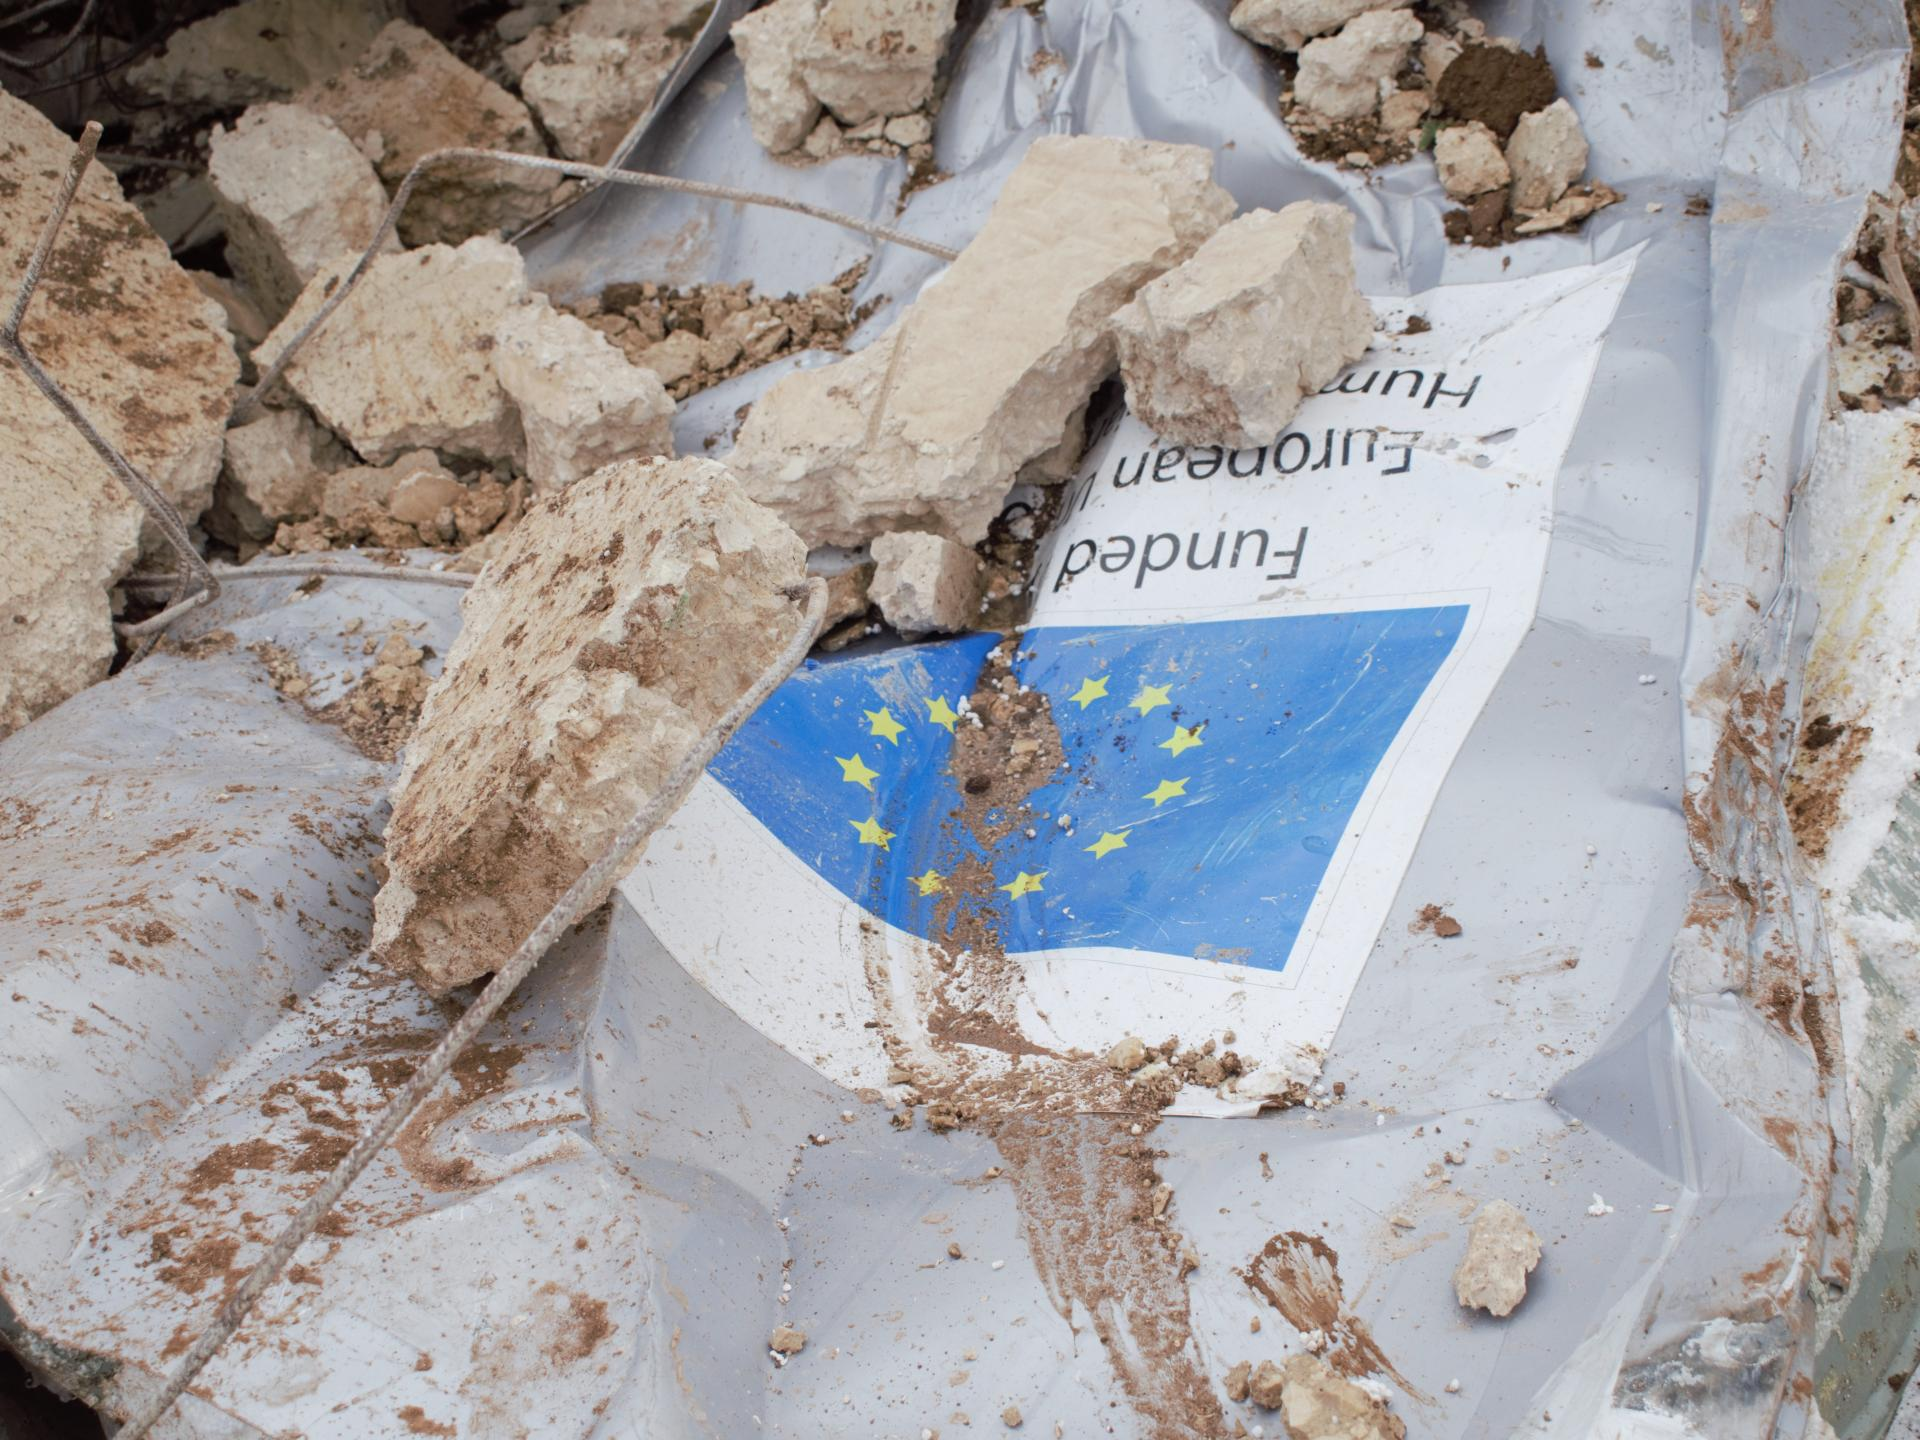 The demolished caravan at Furush Beit Dajan, with the plaque identifying it as a donation by the European Union